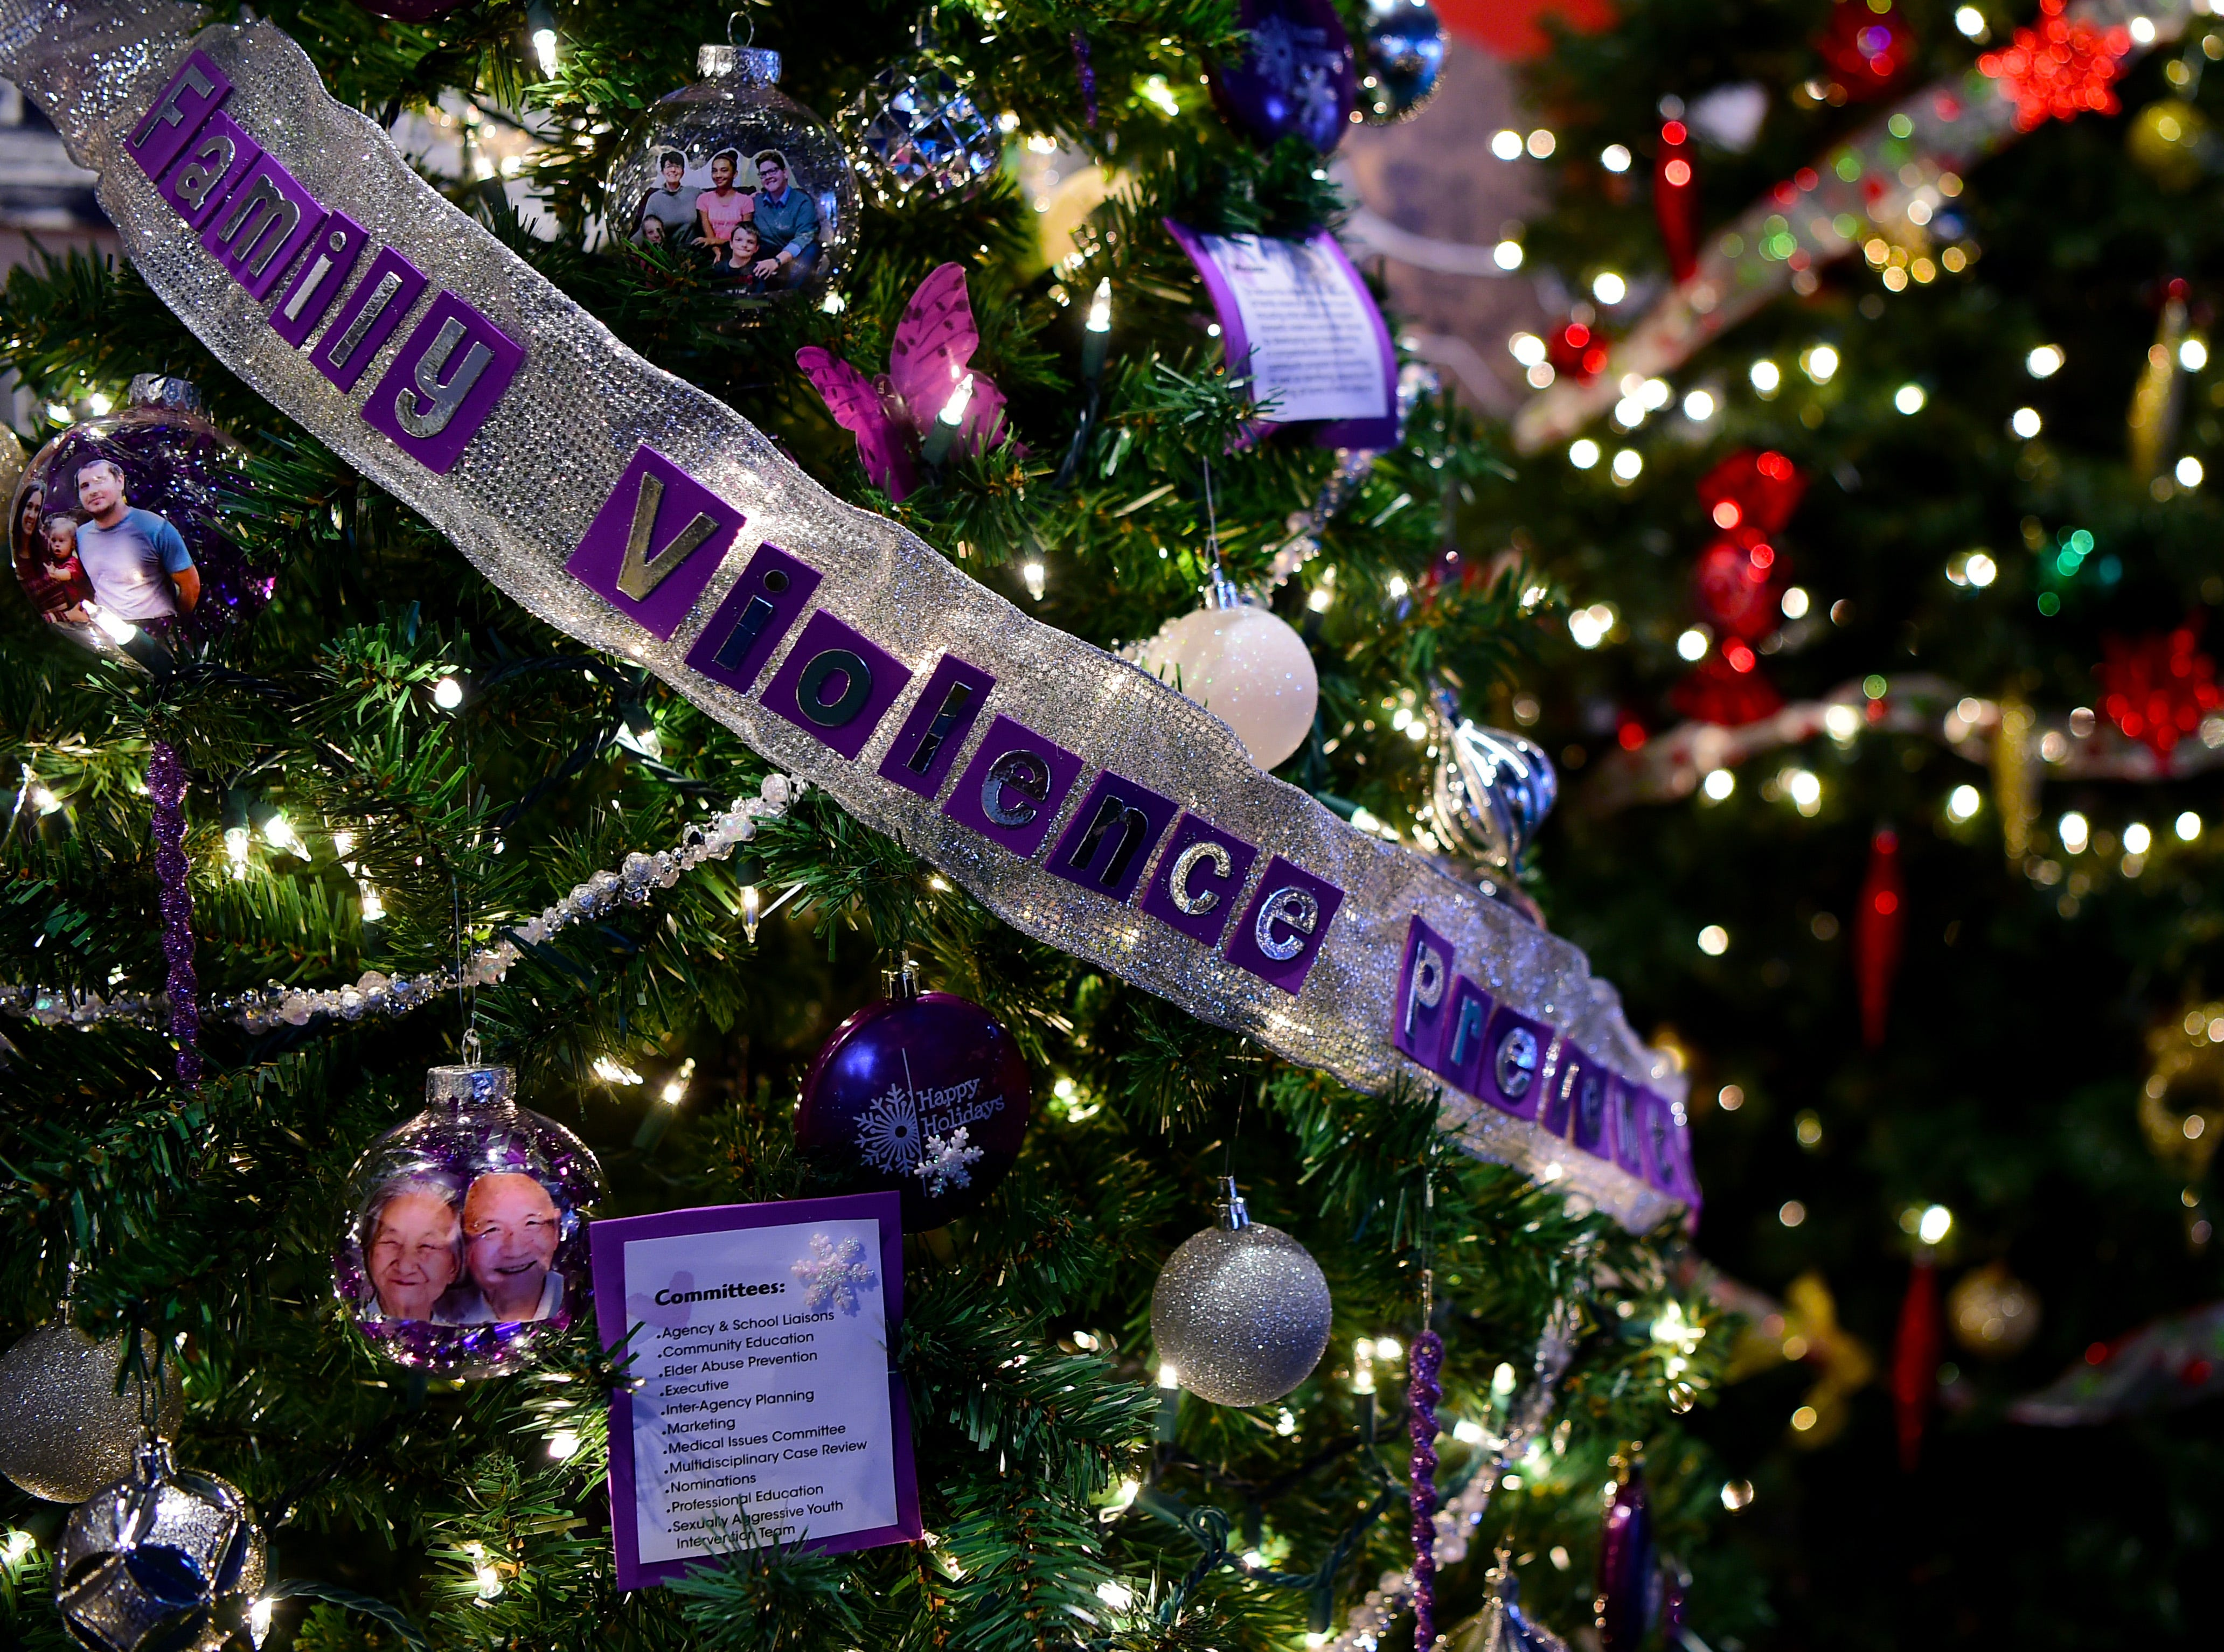 Tree decorated by Broome County Family Violence Prevention Council. Roberson Museum and Science Center's annual Home for the Holidays event opens on November 14 and continues through January 6. The event features hundreds of elaborately decorated holiday trees and displays. November 12, 2018.